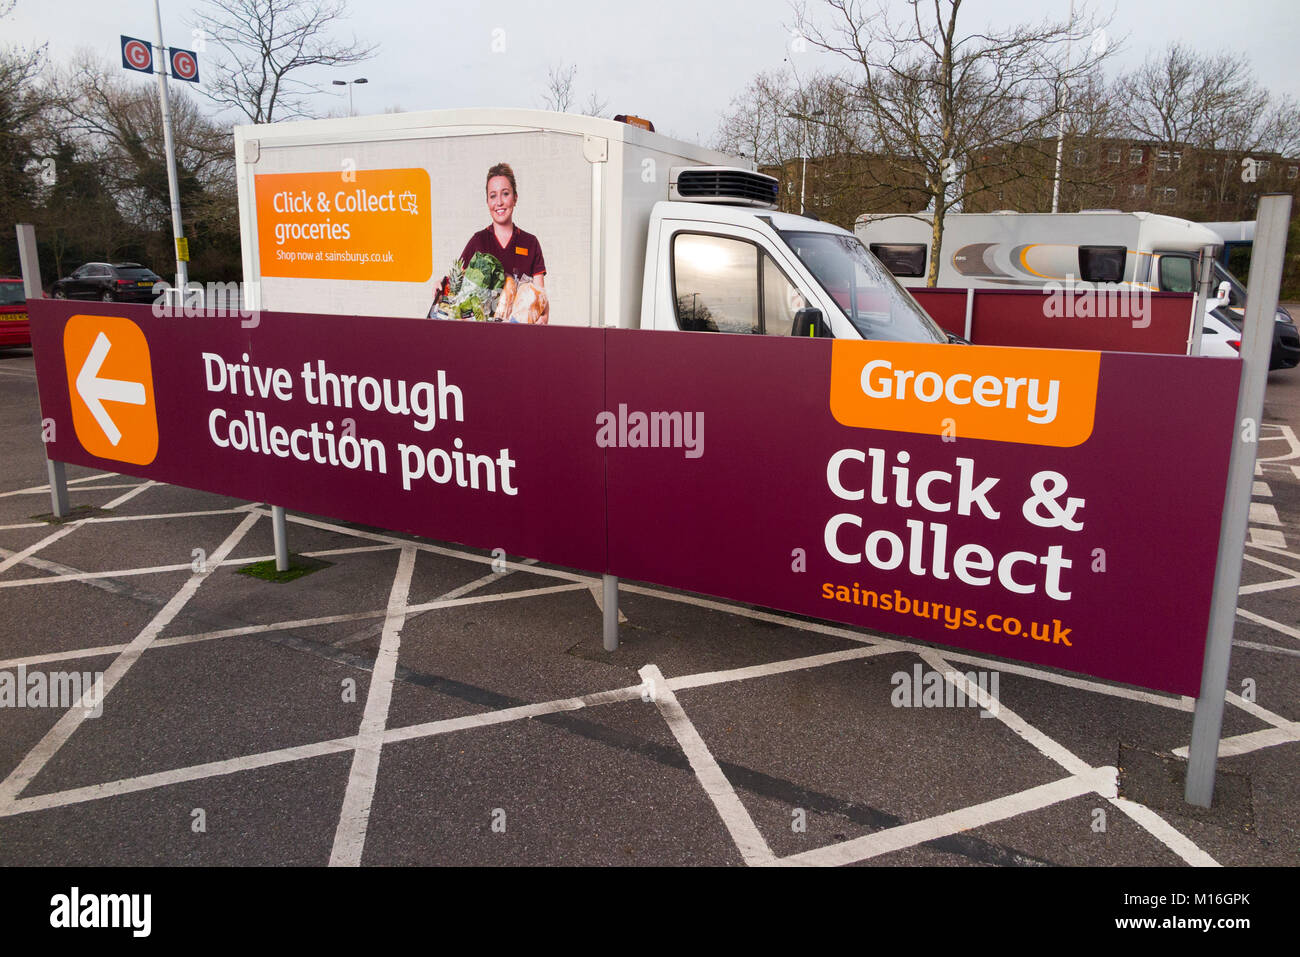 sainsburys shopping stock photos sainsburys shopping stock images alamy. Black Bedroom Furniture Sets. Home Design Ideas